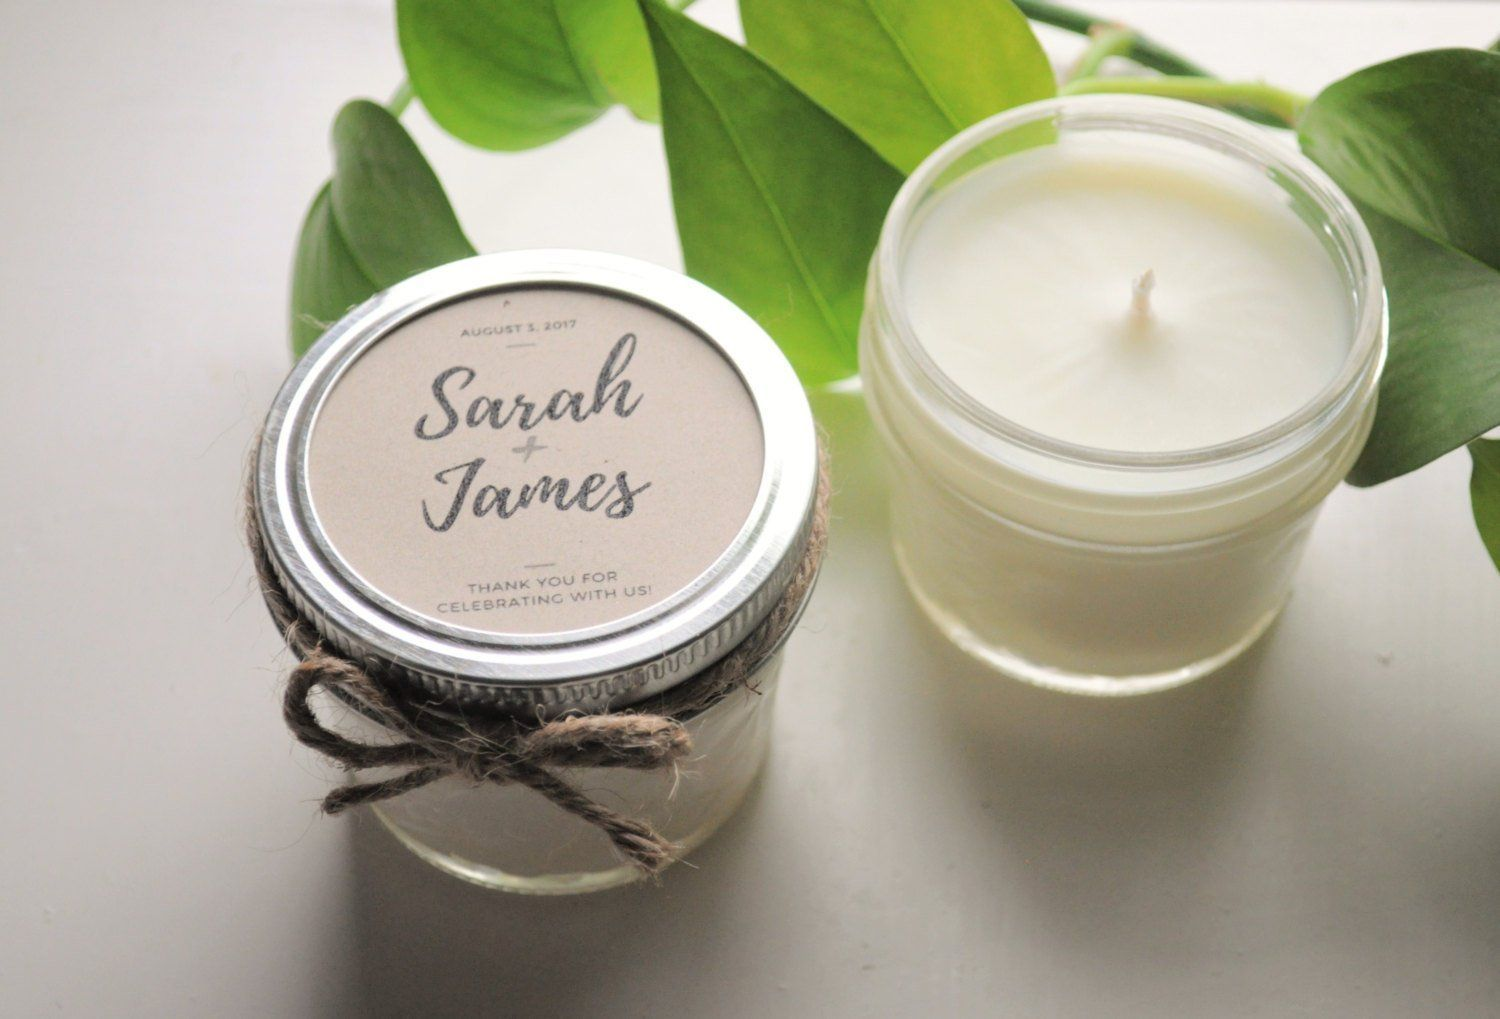 12 Wedding Favor Candles Wedding Gift For Guests Candles Wedding Giveaways Personali Candle Wedding Favors Wedding Gifts For Guests Trendy Wedding Favors